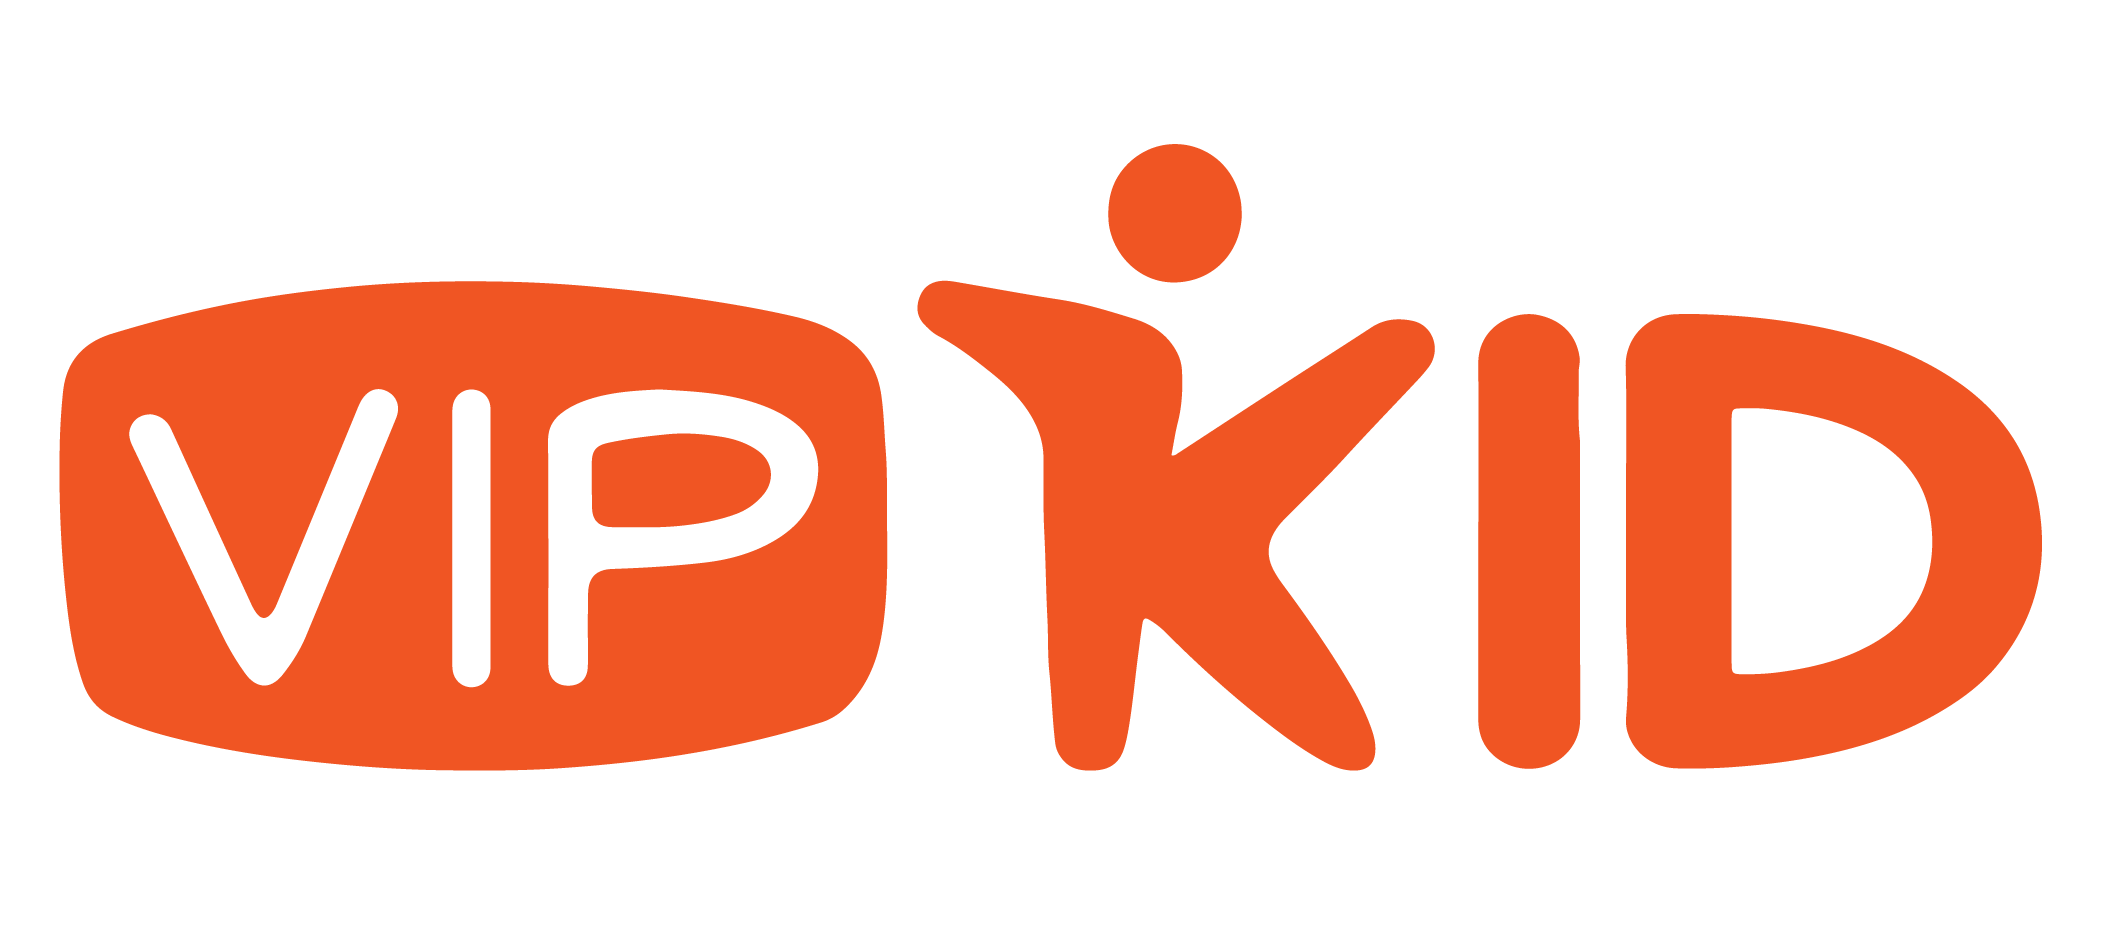 picture regarding Vipkid Dino Printable titled VIPKID Area Functions